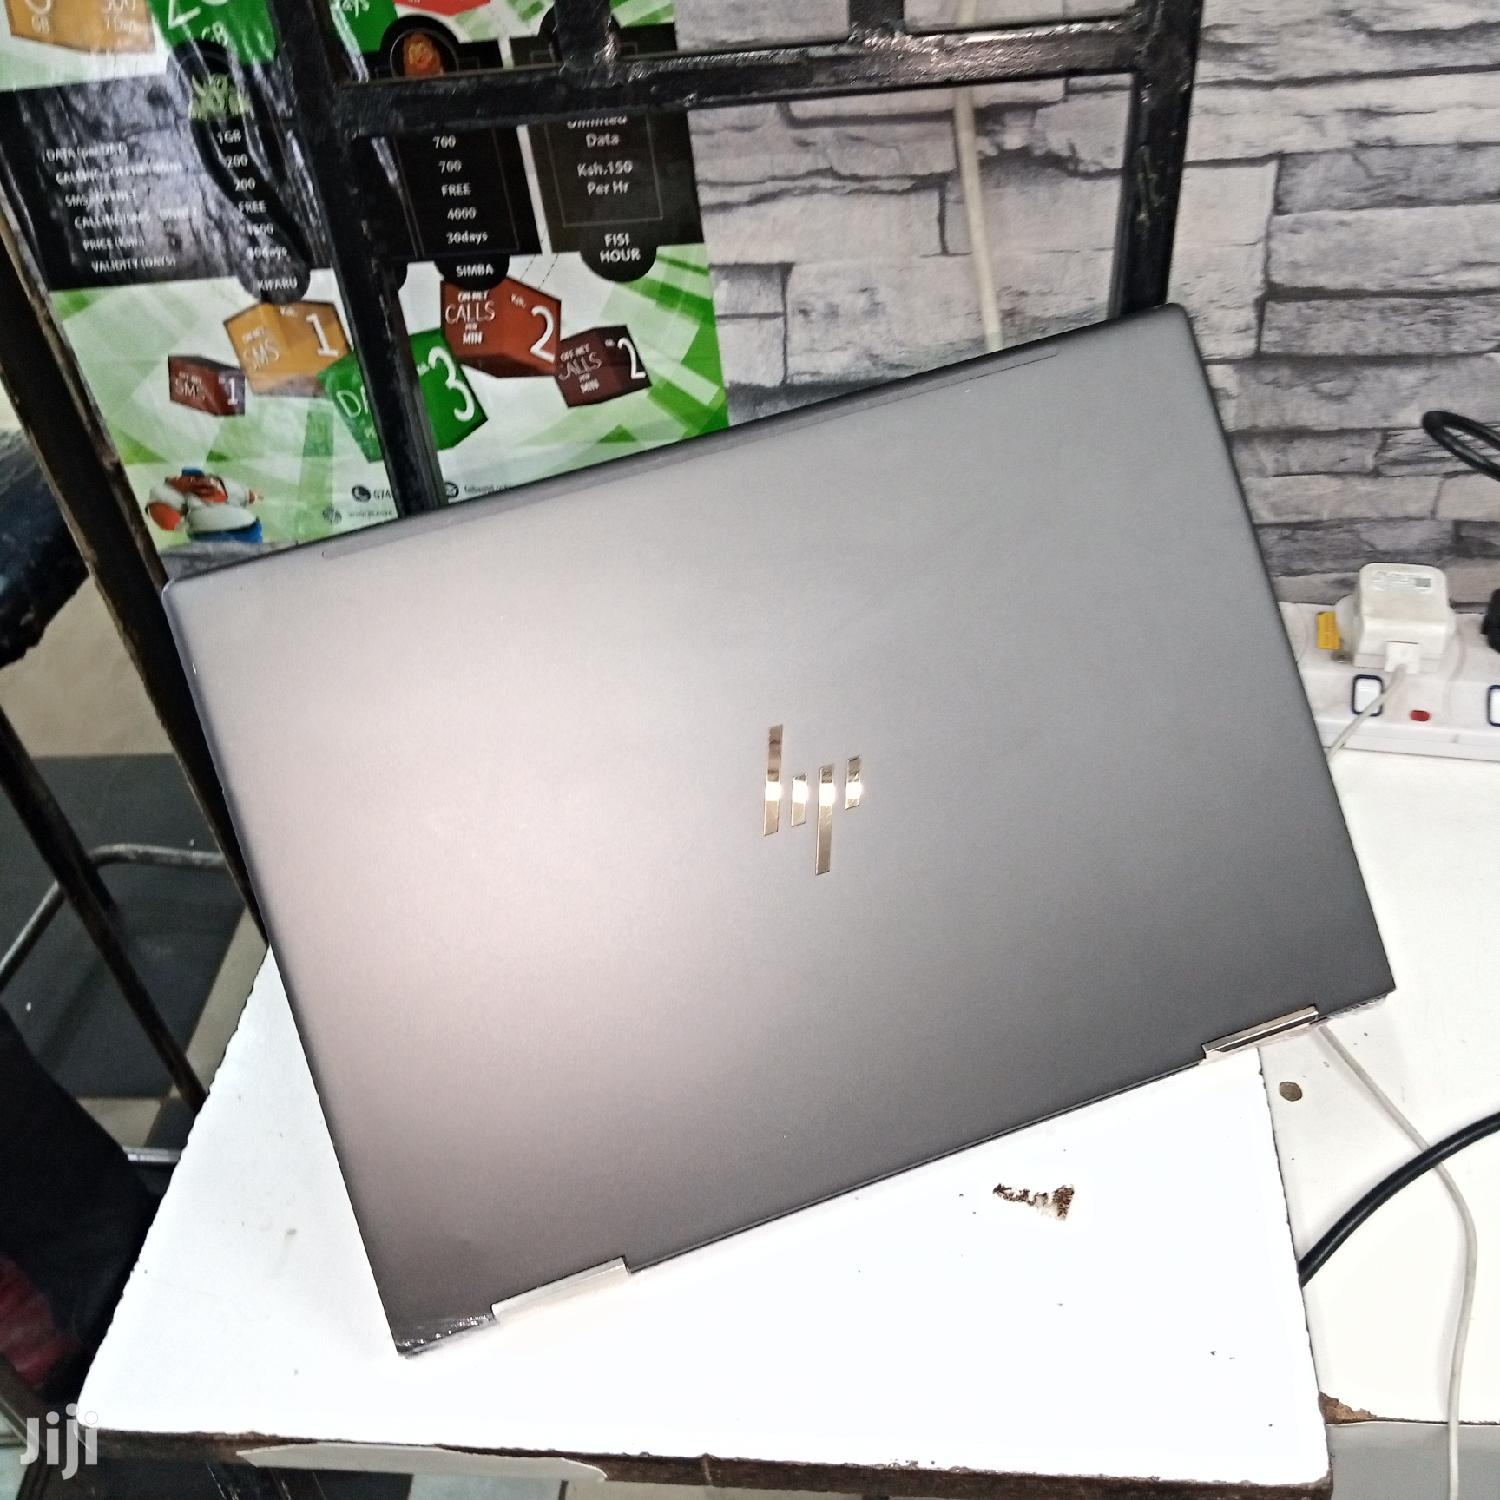 New Laptop HP Spectre 13 16GB Intel Core i7 SSD 512GB | Laptops & Computers for sale in Nairobi Central, Nairobi, Kenya